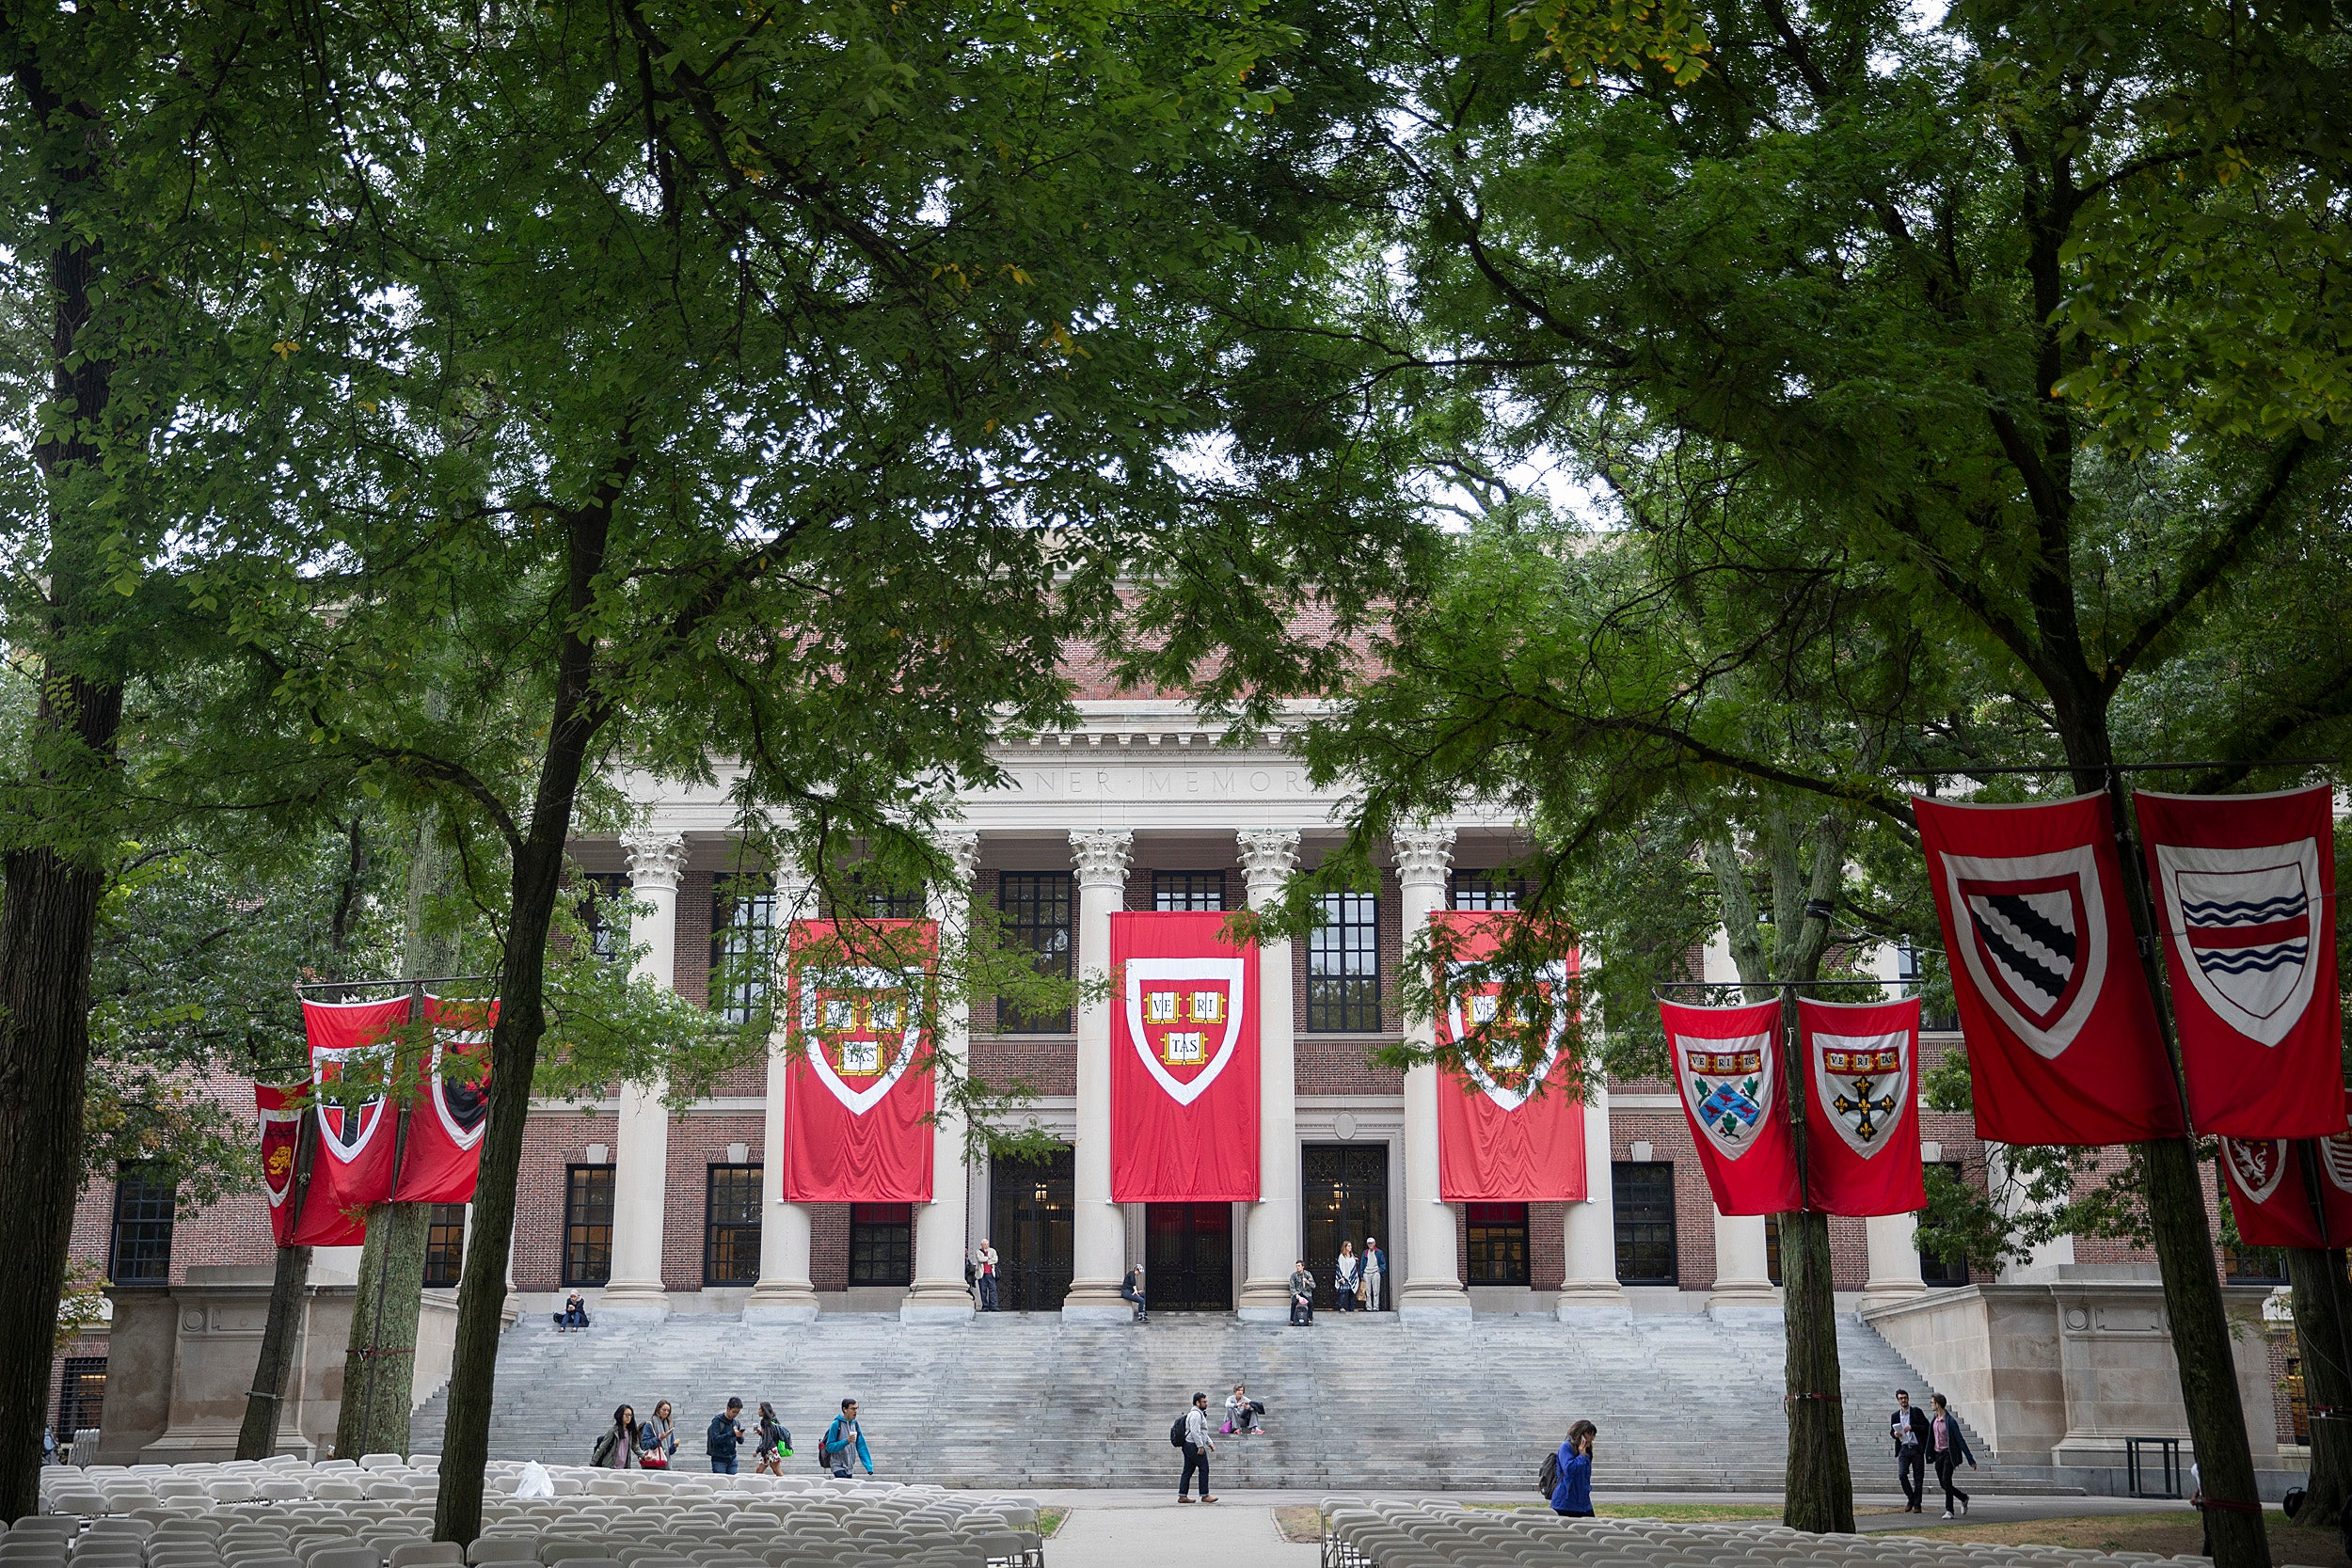 Widener Library decorated with Harvard banners